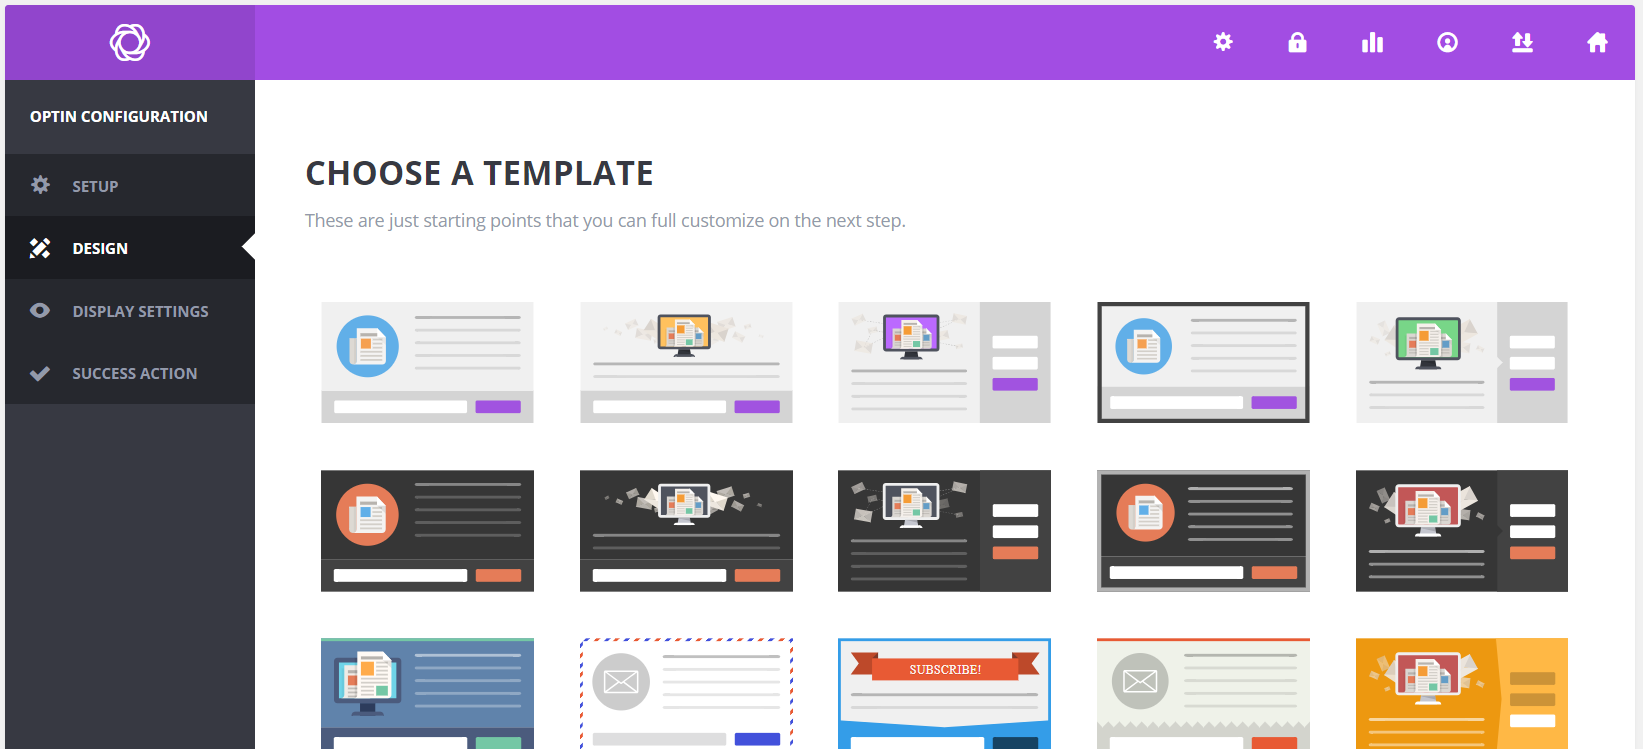 WordPress Email Optin Form Templates